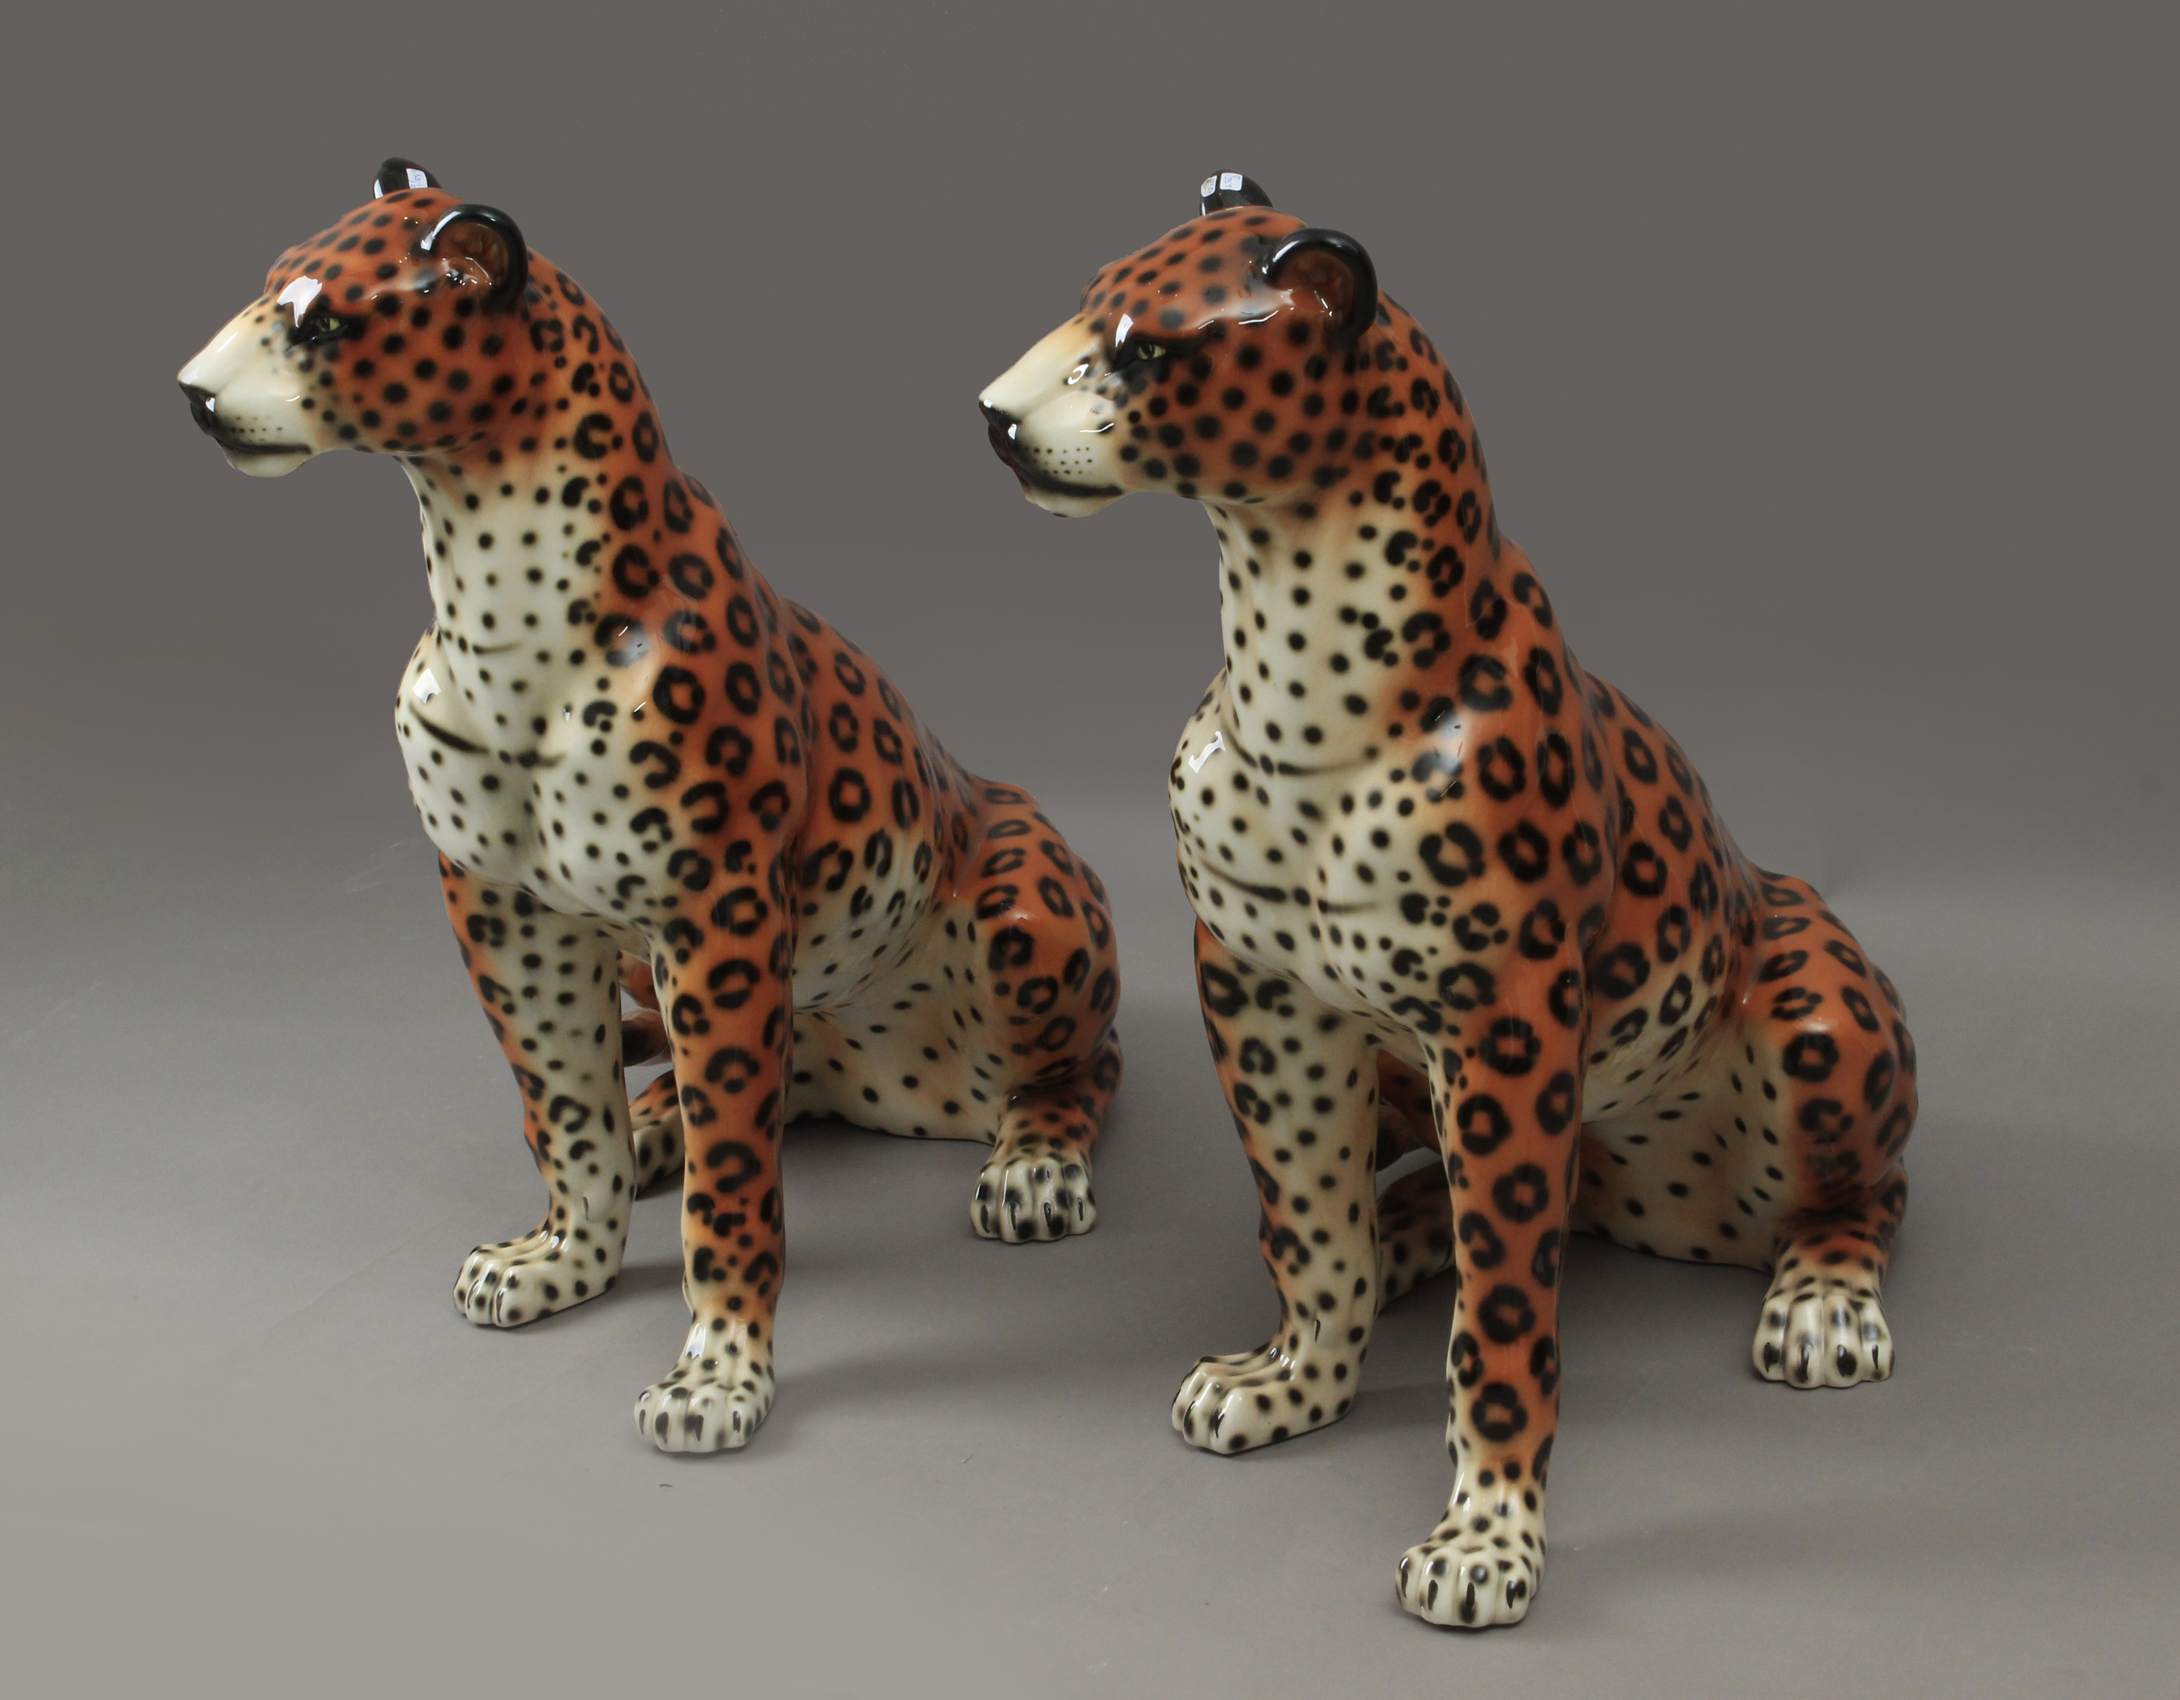 Lot 300 - A pair of leopard figures in porcelain circa 1980